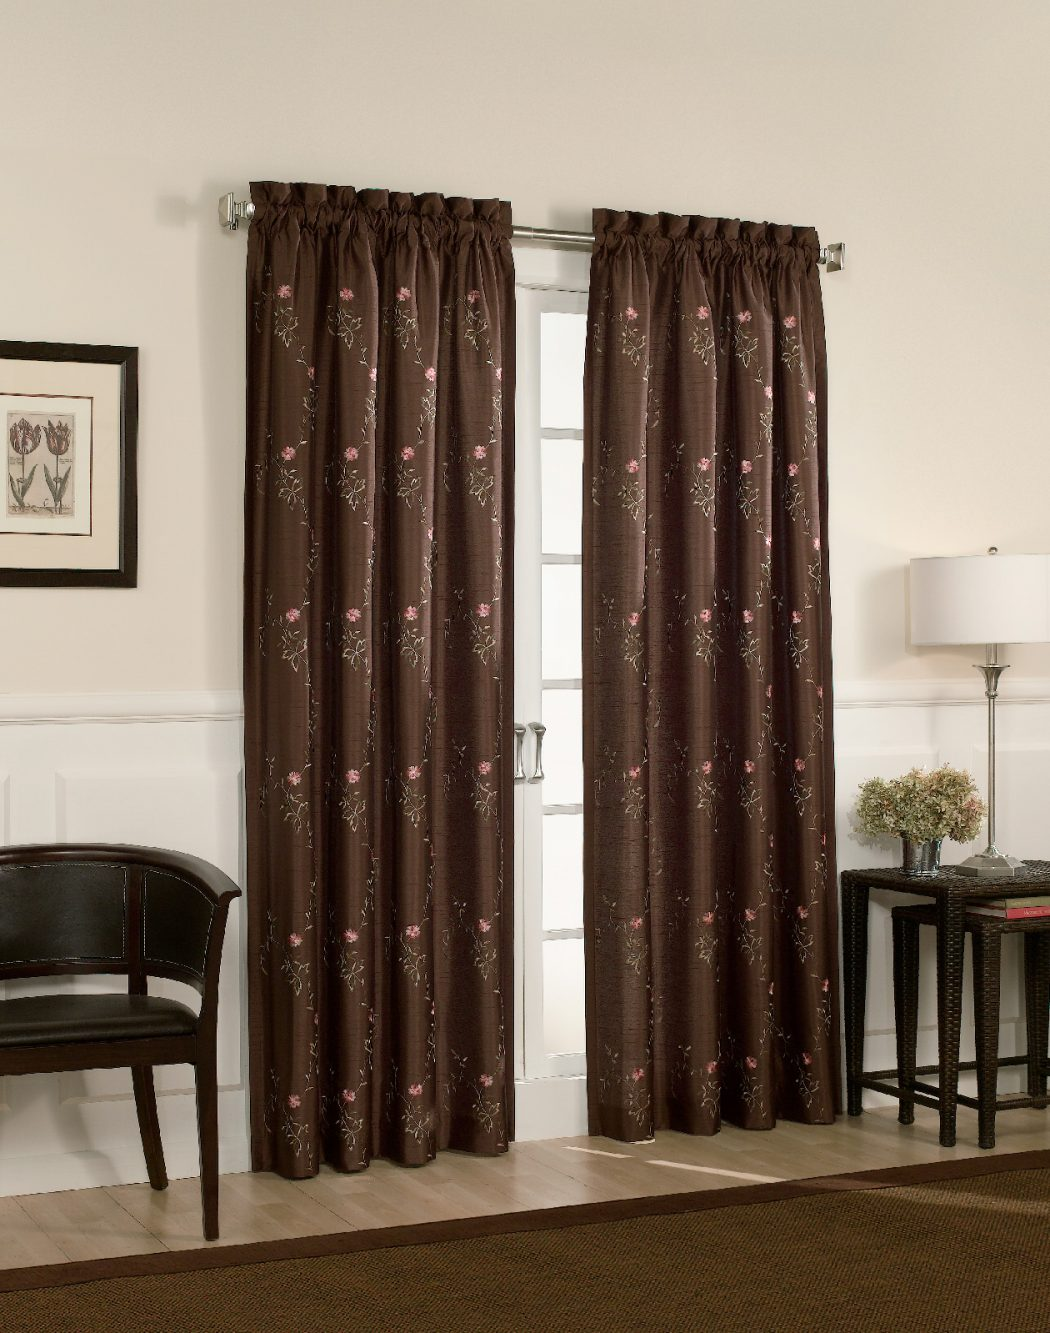 tracy-brown-back-tab-window-curtain-panel-larg 20+ Hottest Curtain Design Ideas for 2020